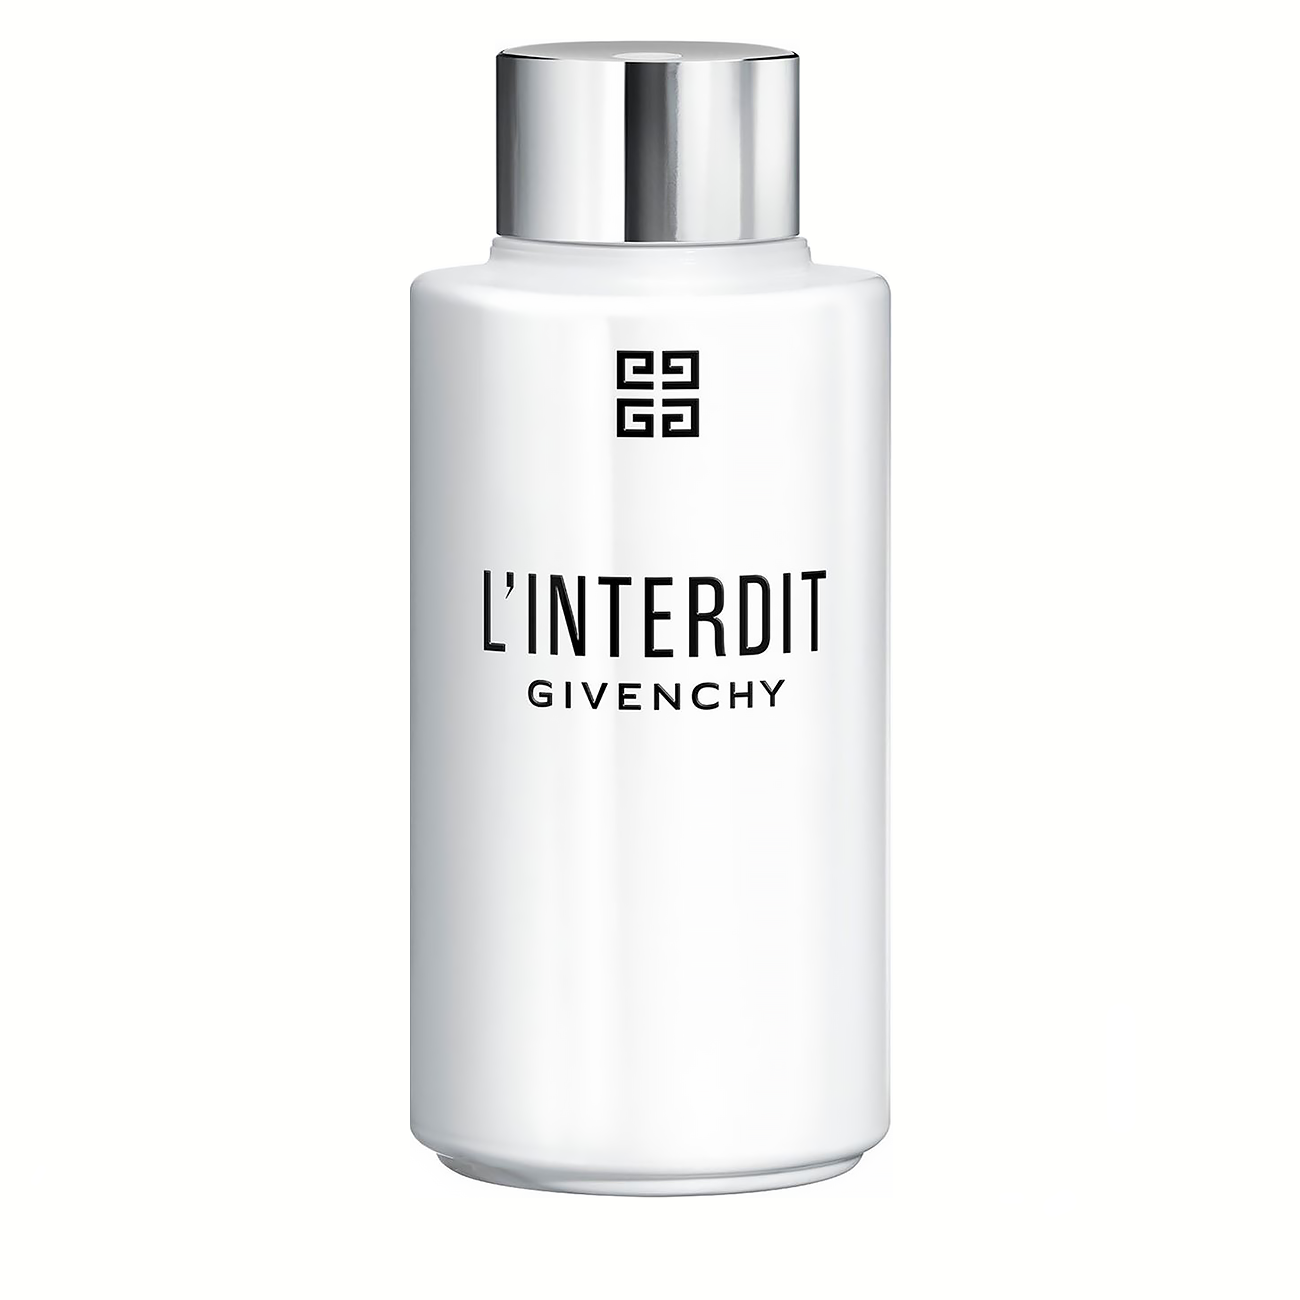 L'interdit Body Lotion 200ml Givenchy imagine 2021 bestvalue.eu